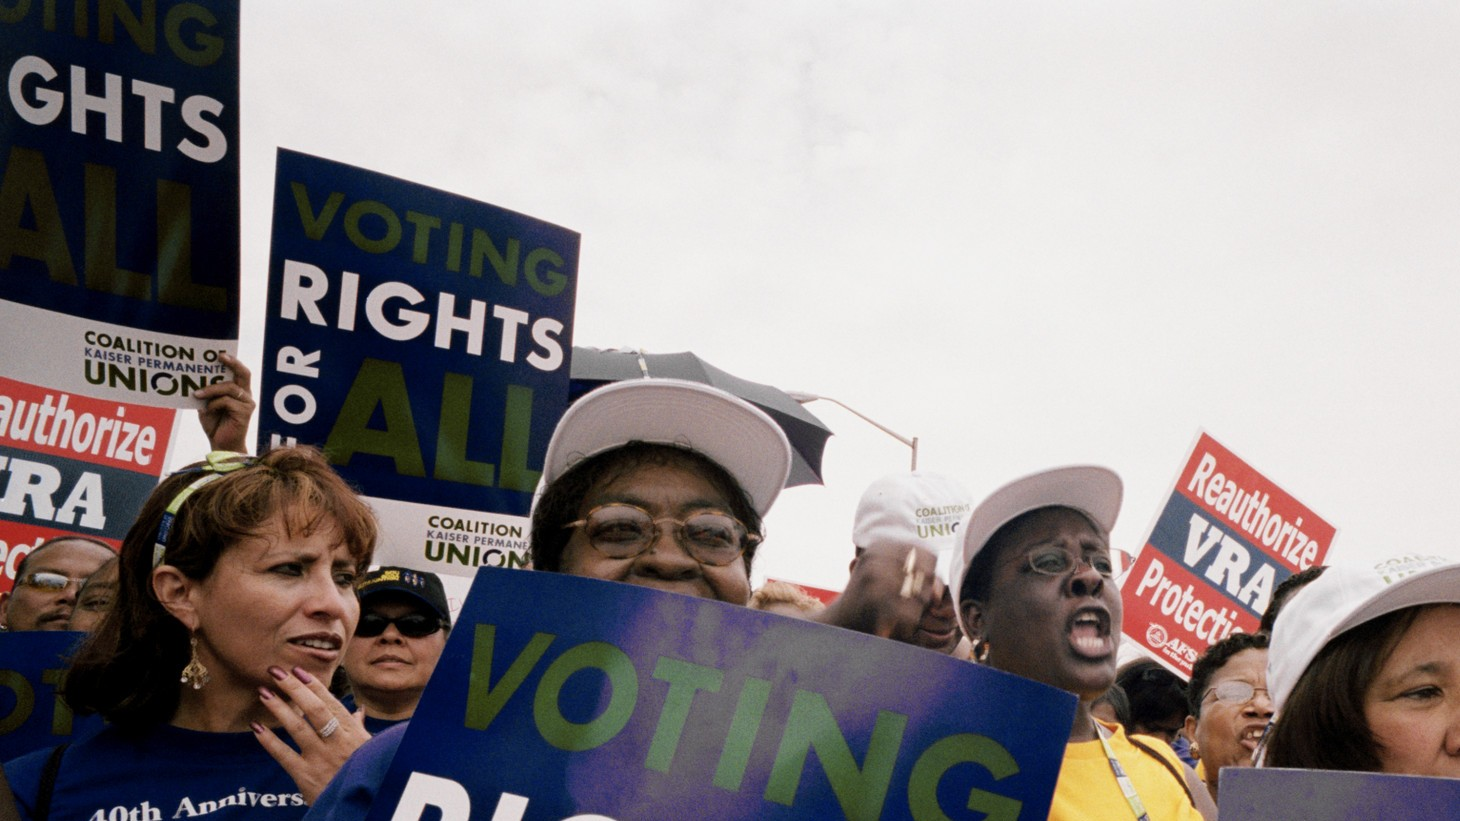 KP workers attend a voting rights rally during 2005 national agreement bargaining